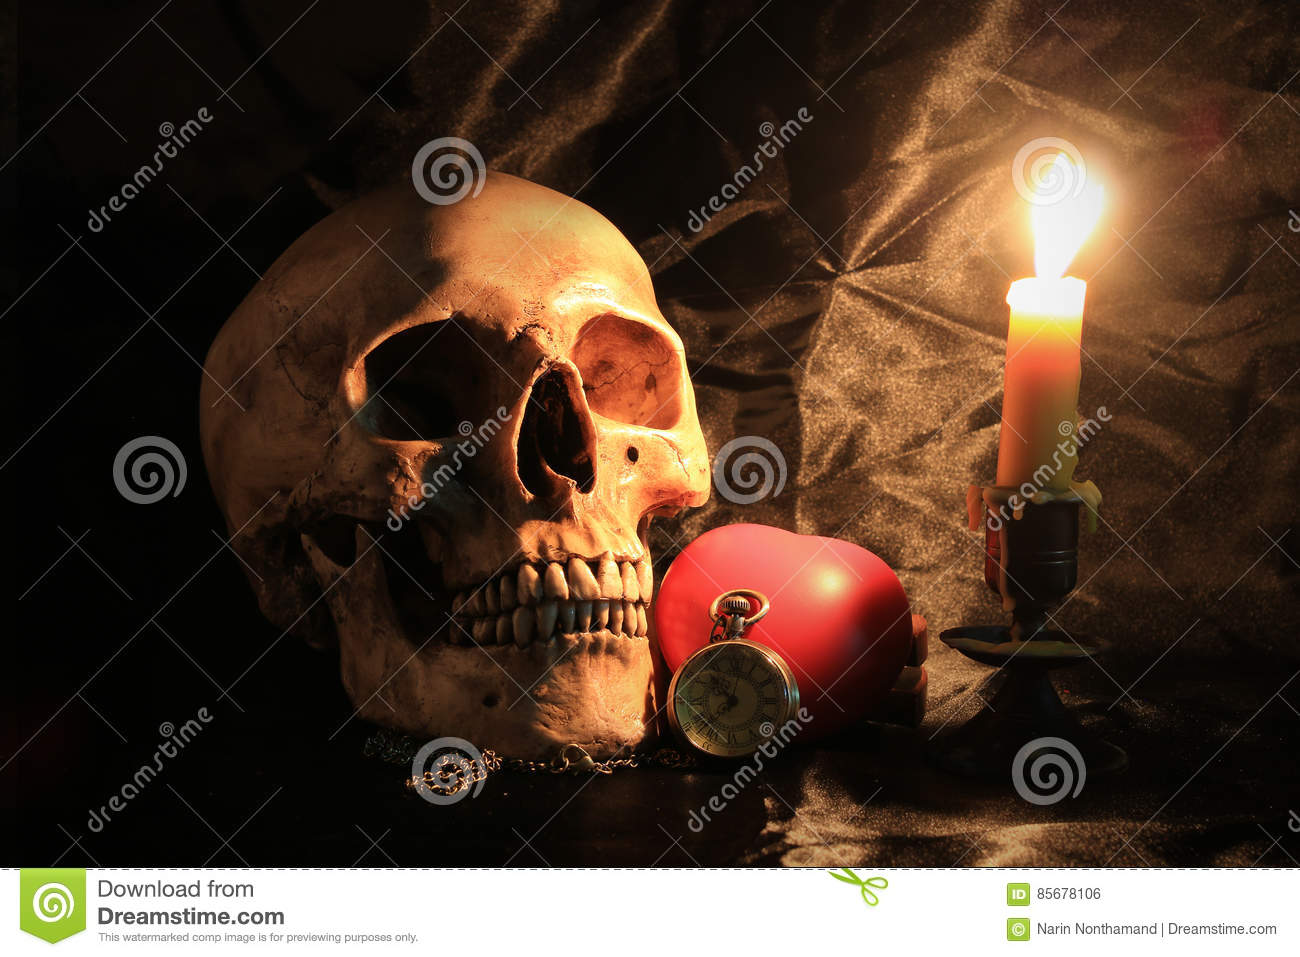 Human skull with vintage pocket clock, red heart and candle light on black fabric background , Love and time concept in still life